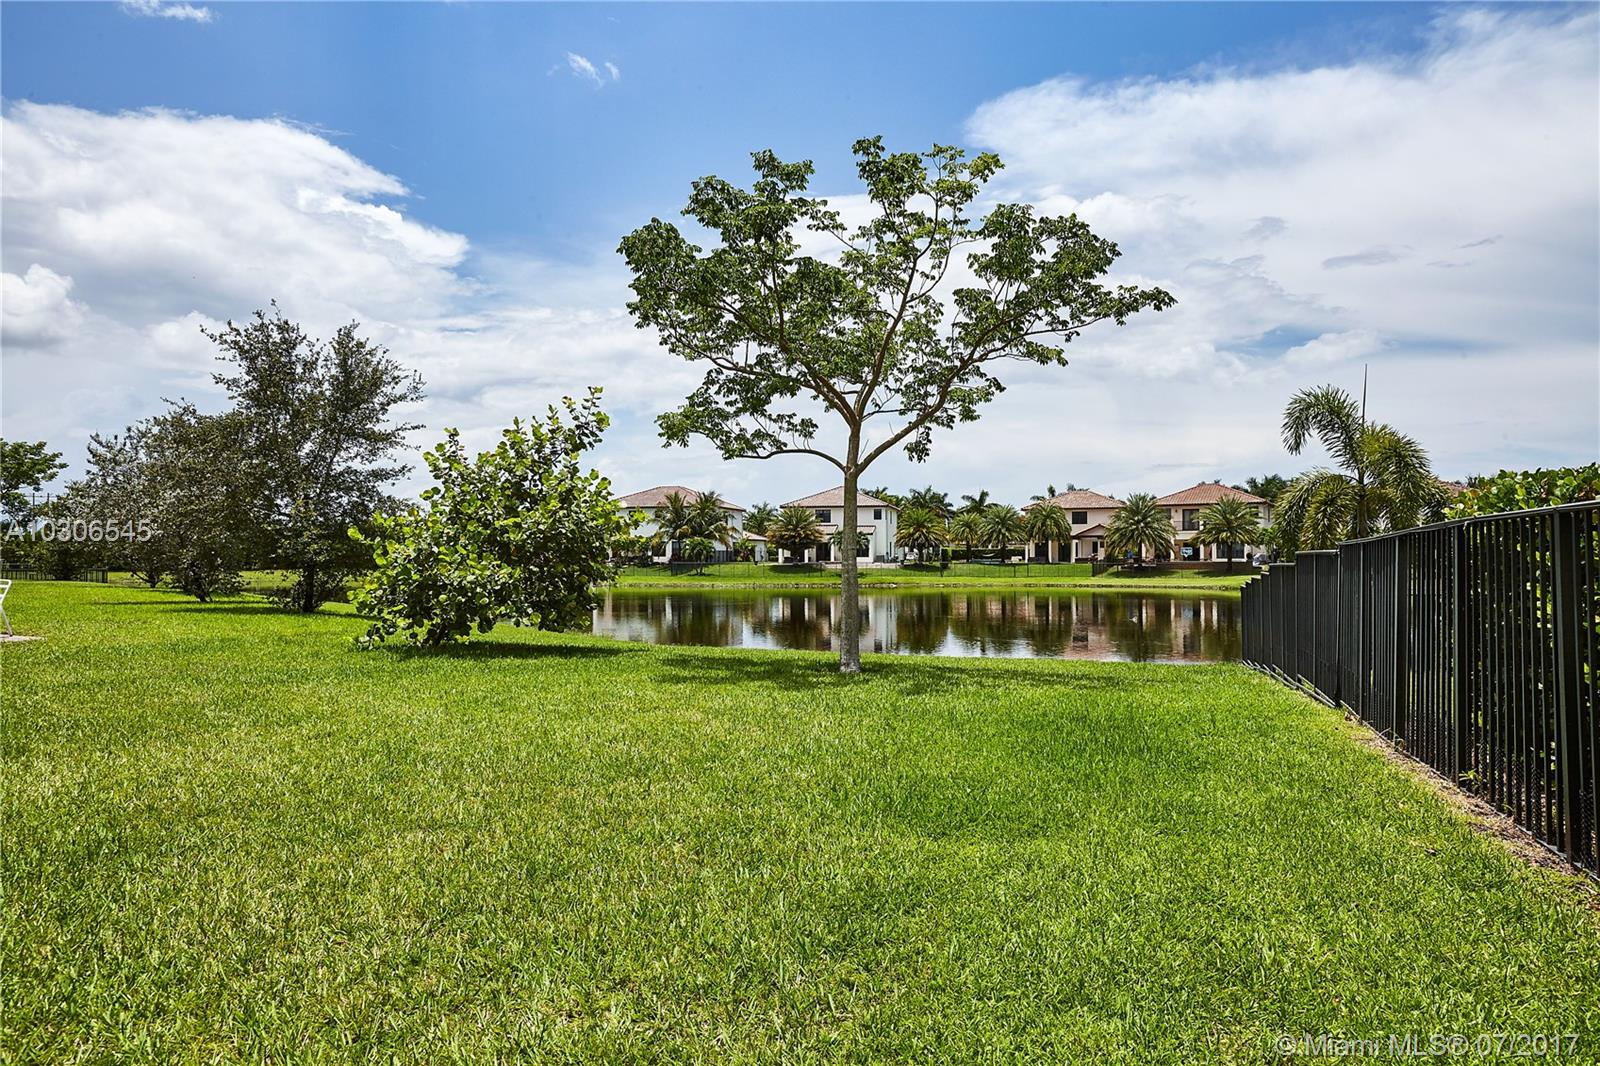 3660 Nw 85th Ave, Cooper City FL, 33024